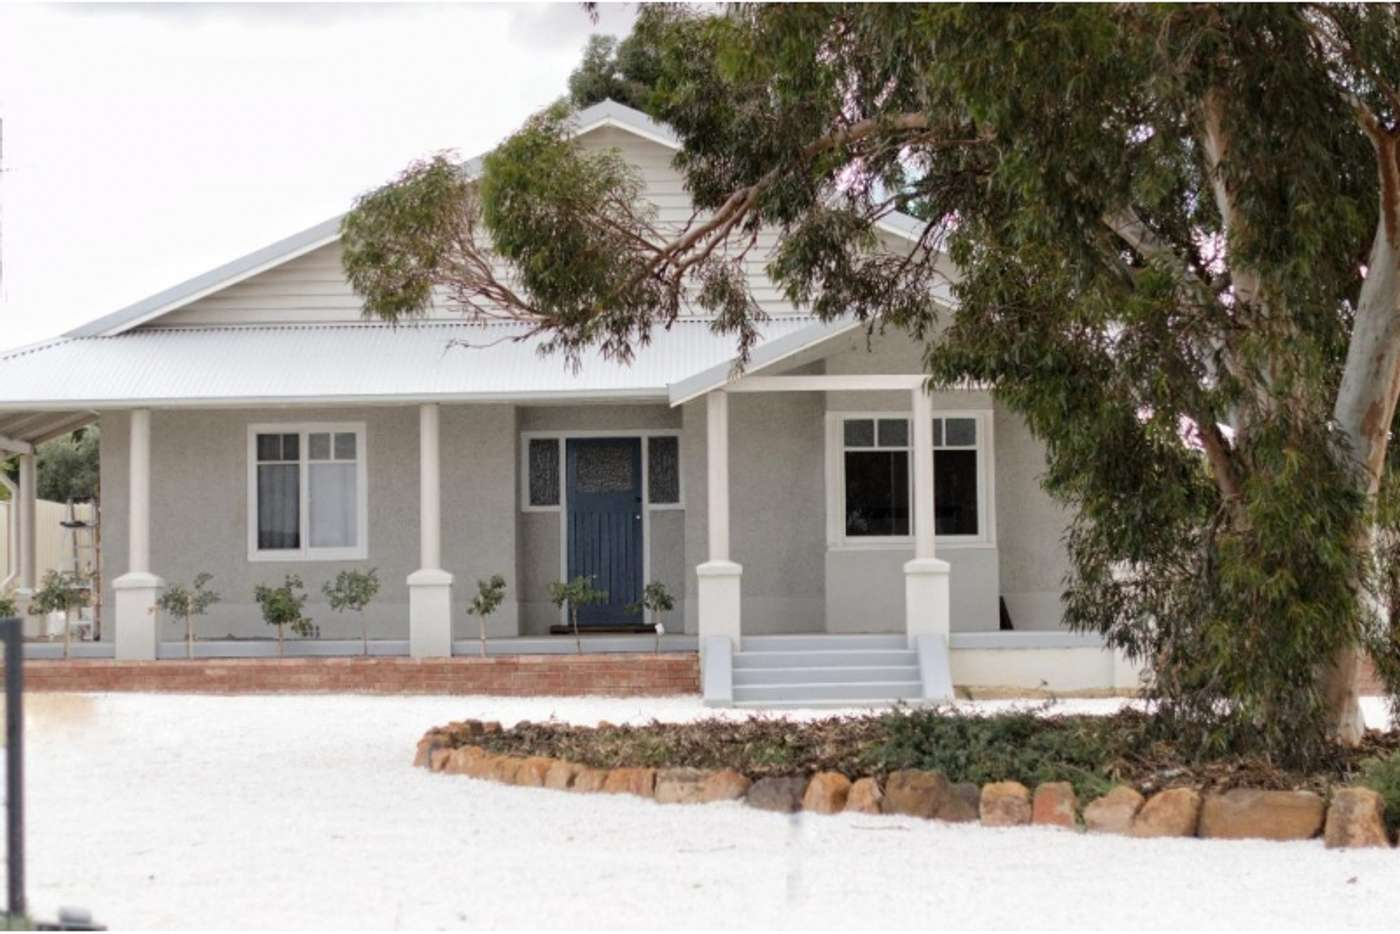 Main view of Homely house listing, 41 Jarvis Street, Berri SA 5343